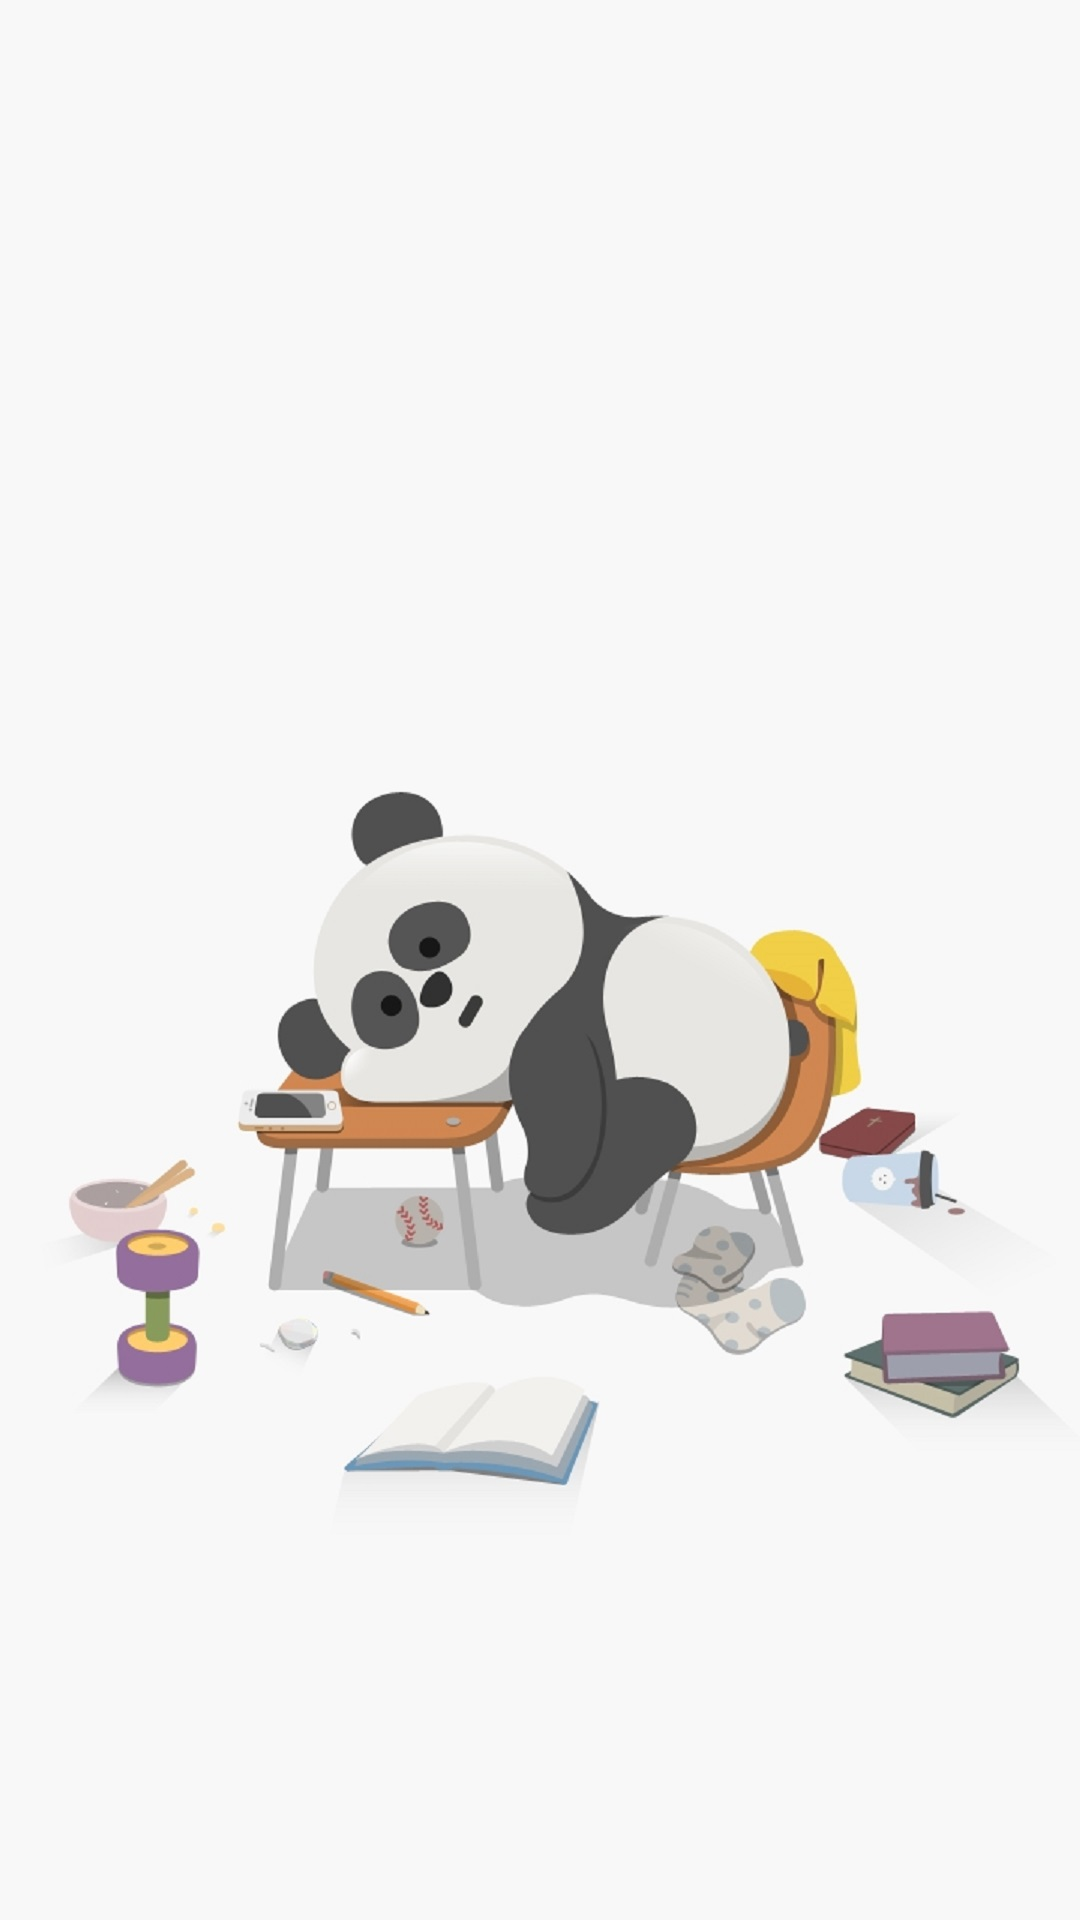 Cute-Sleepy-Panda-Cute-Animal-iPhone-Tap-to-see-more-high-quality-iphone-ba-wallpaper-wpc9003948